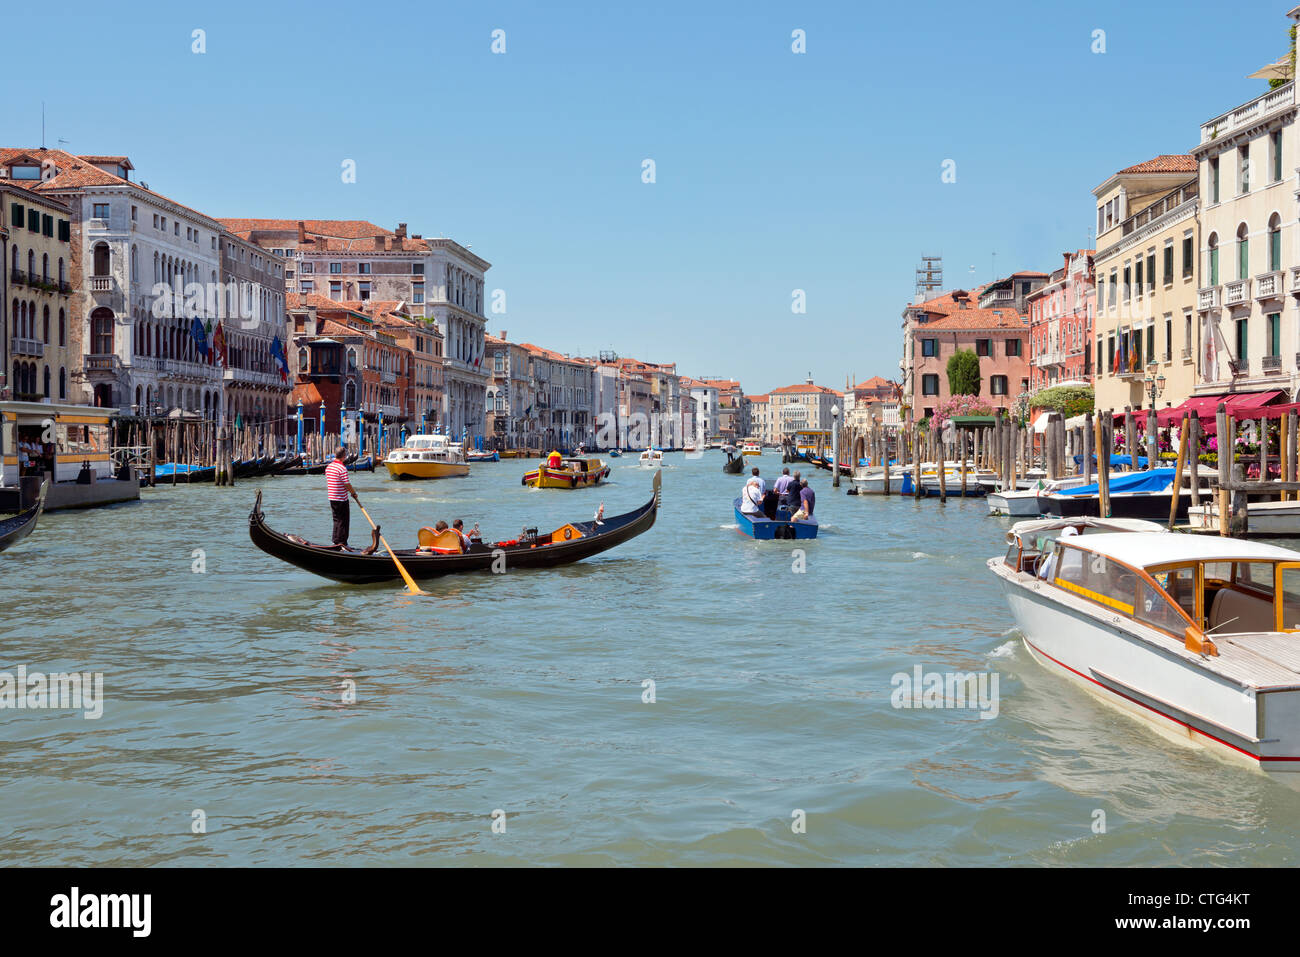 Cityscape of the Grand Canal Venice Italy Stock Photo